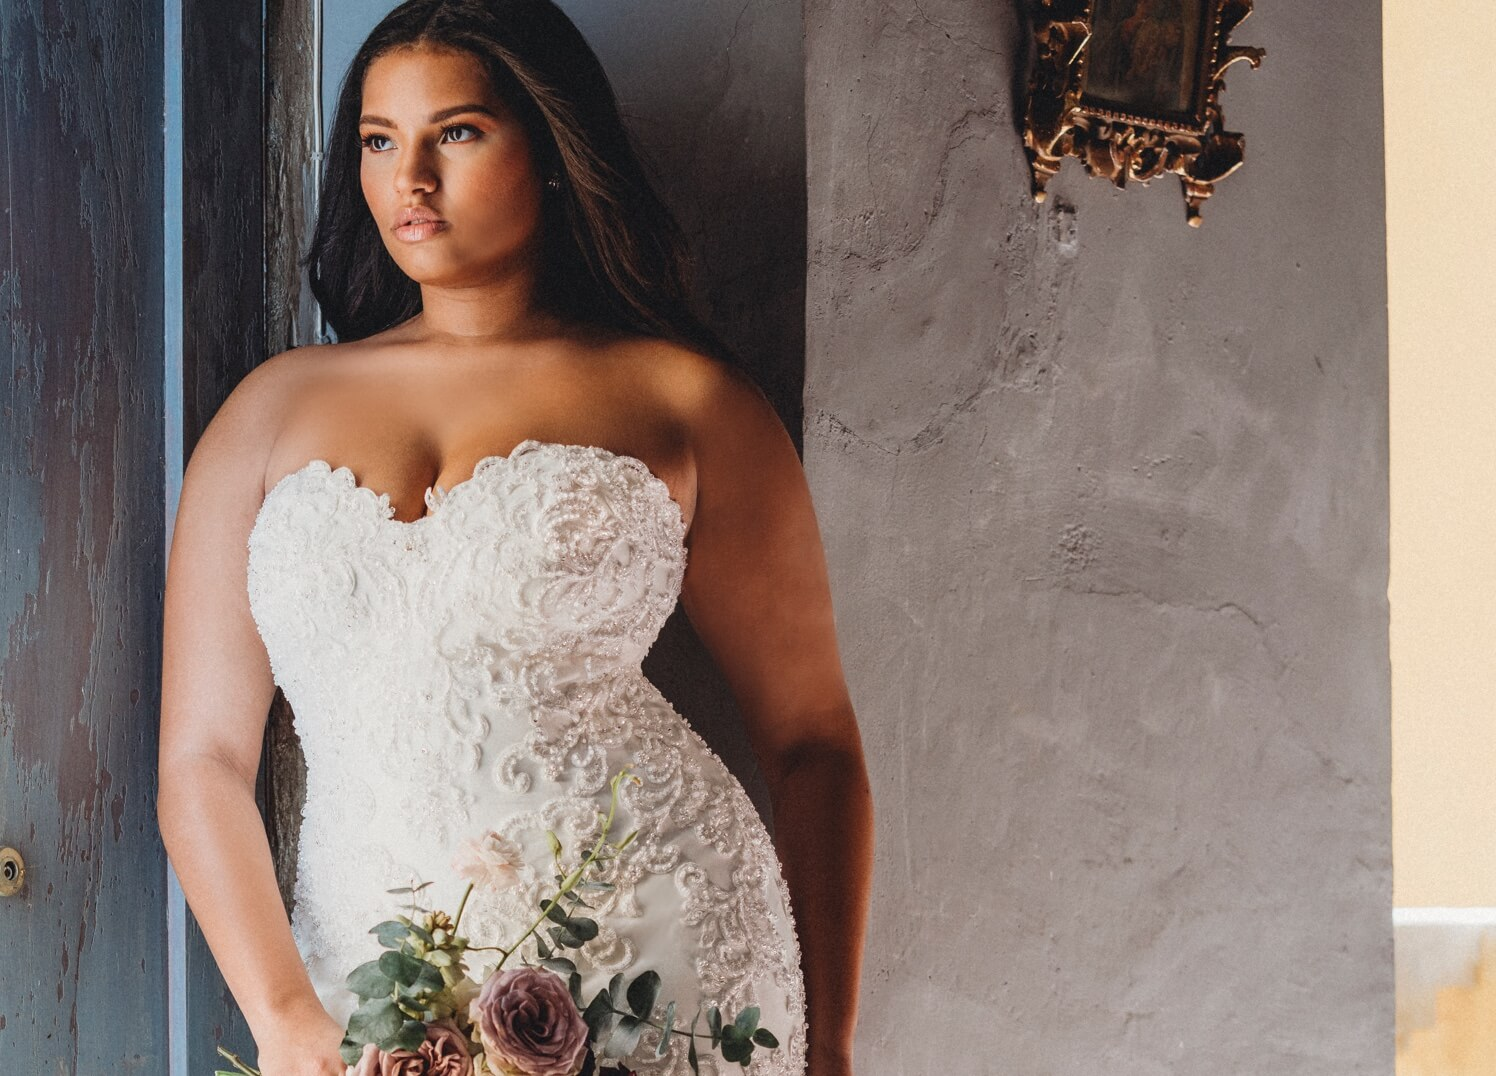 Brunette plus size bride in a white gown